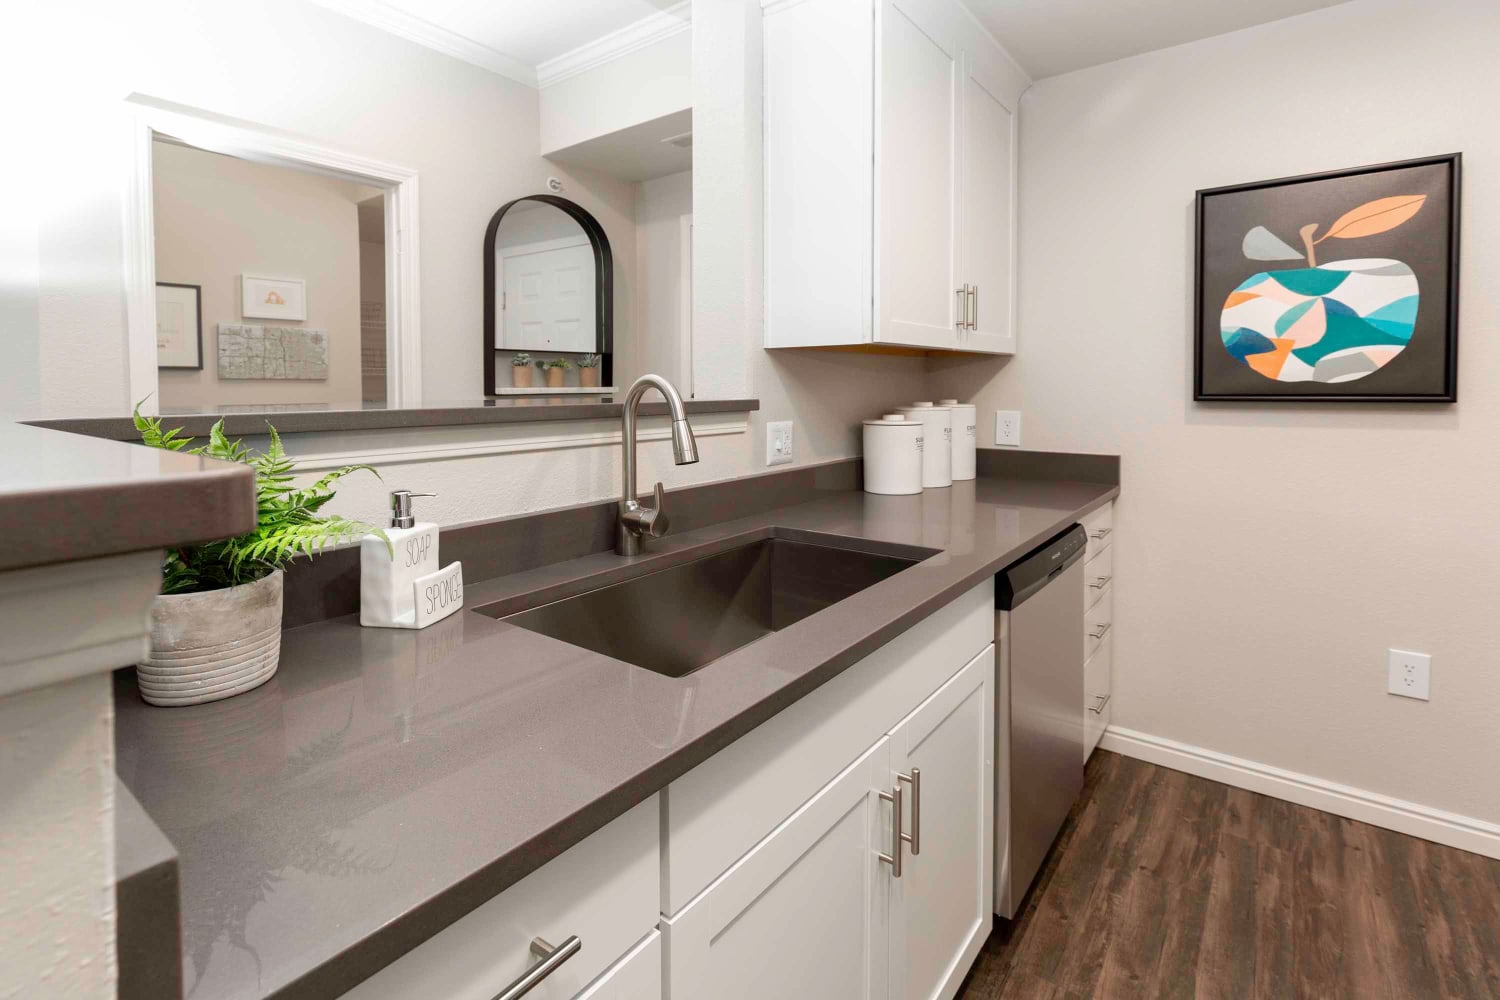 Modern kitchen at Irving Schoolhouse Apartments in Salt Lake City, Utah